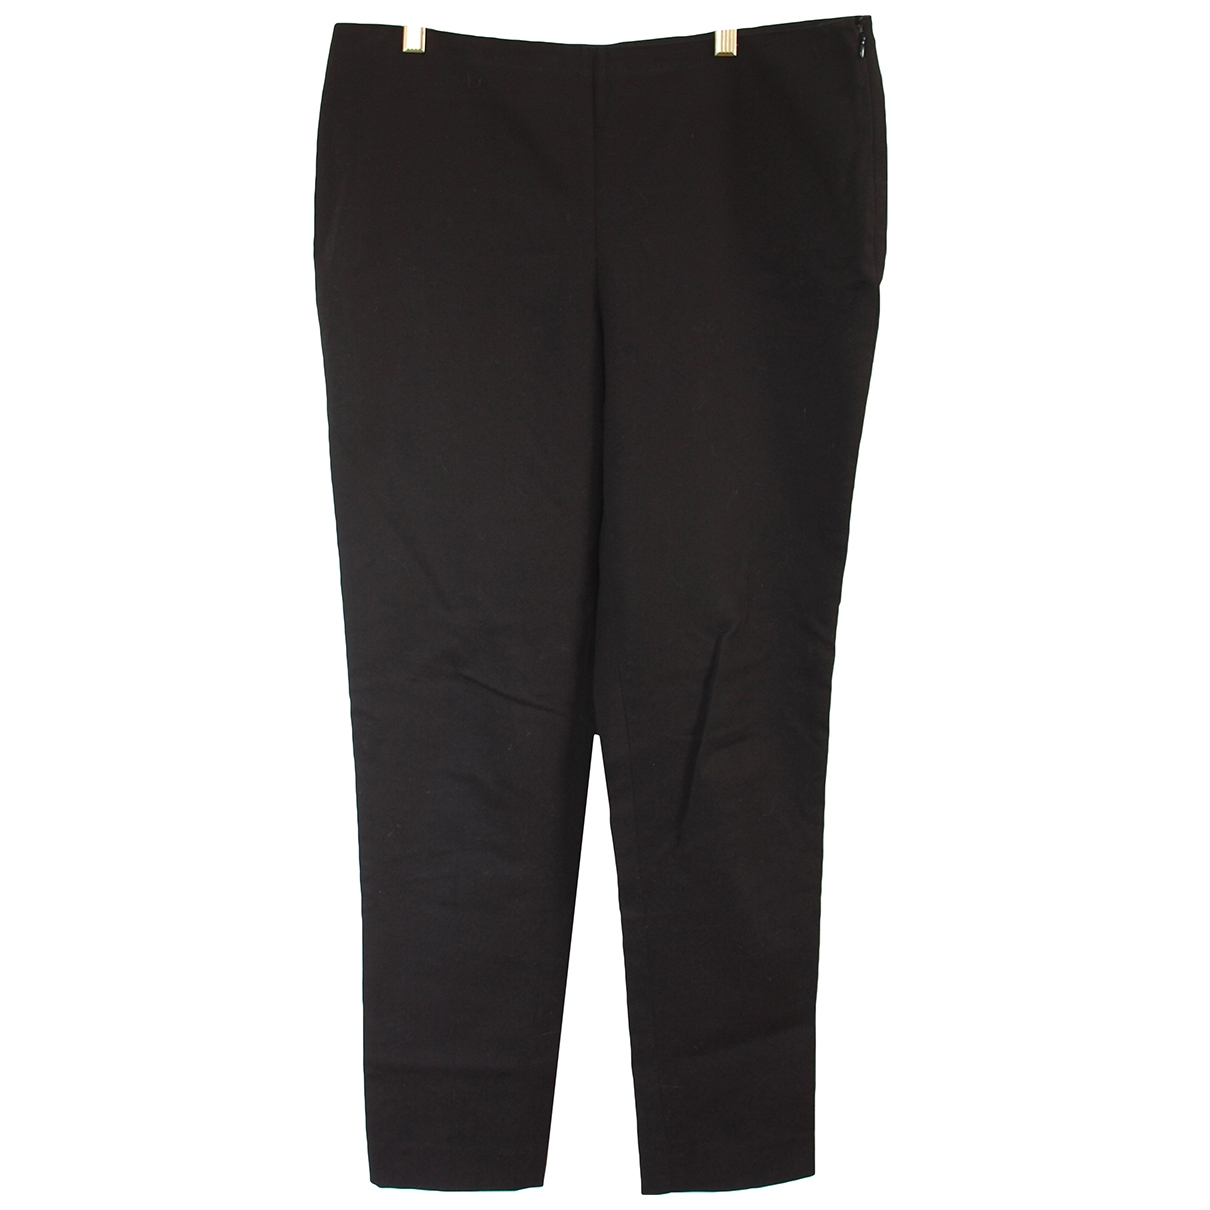 Vince Camuto \N Black Cotton Trousers for Women 10 US